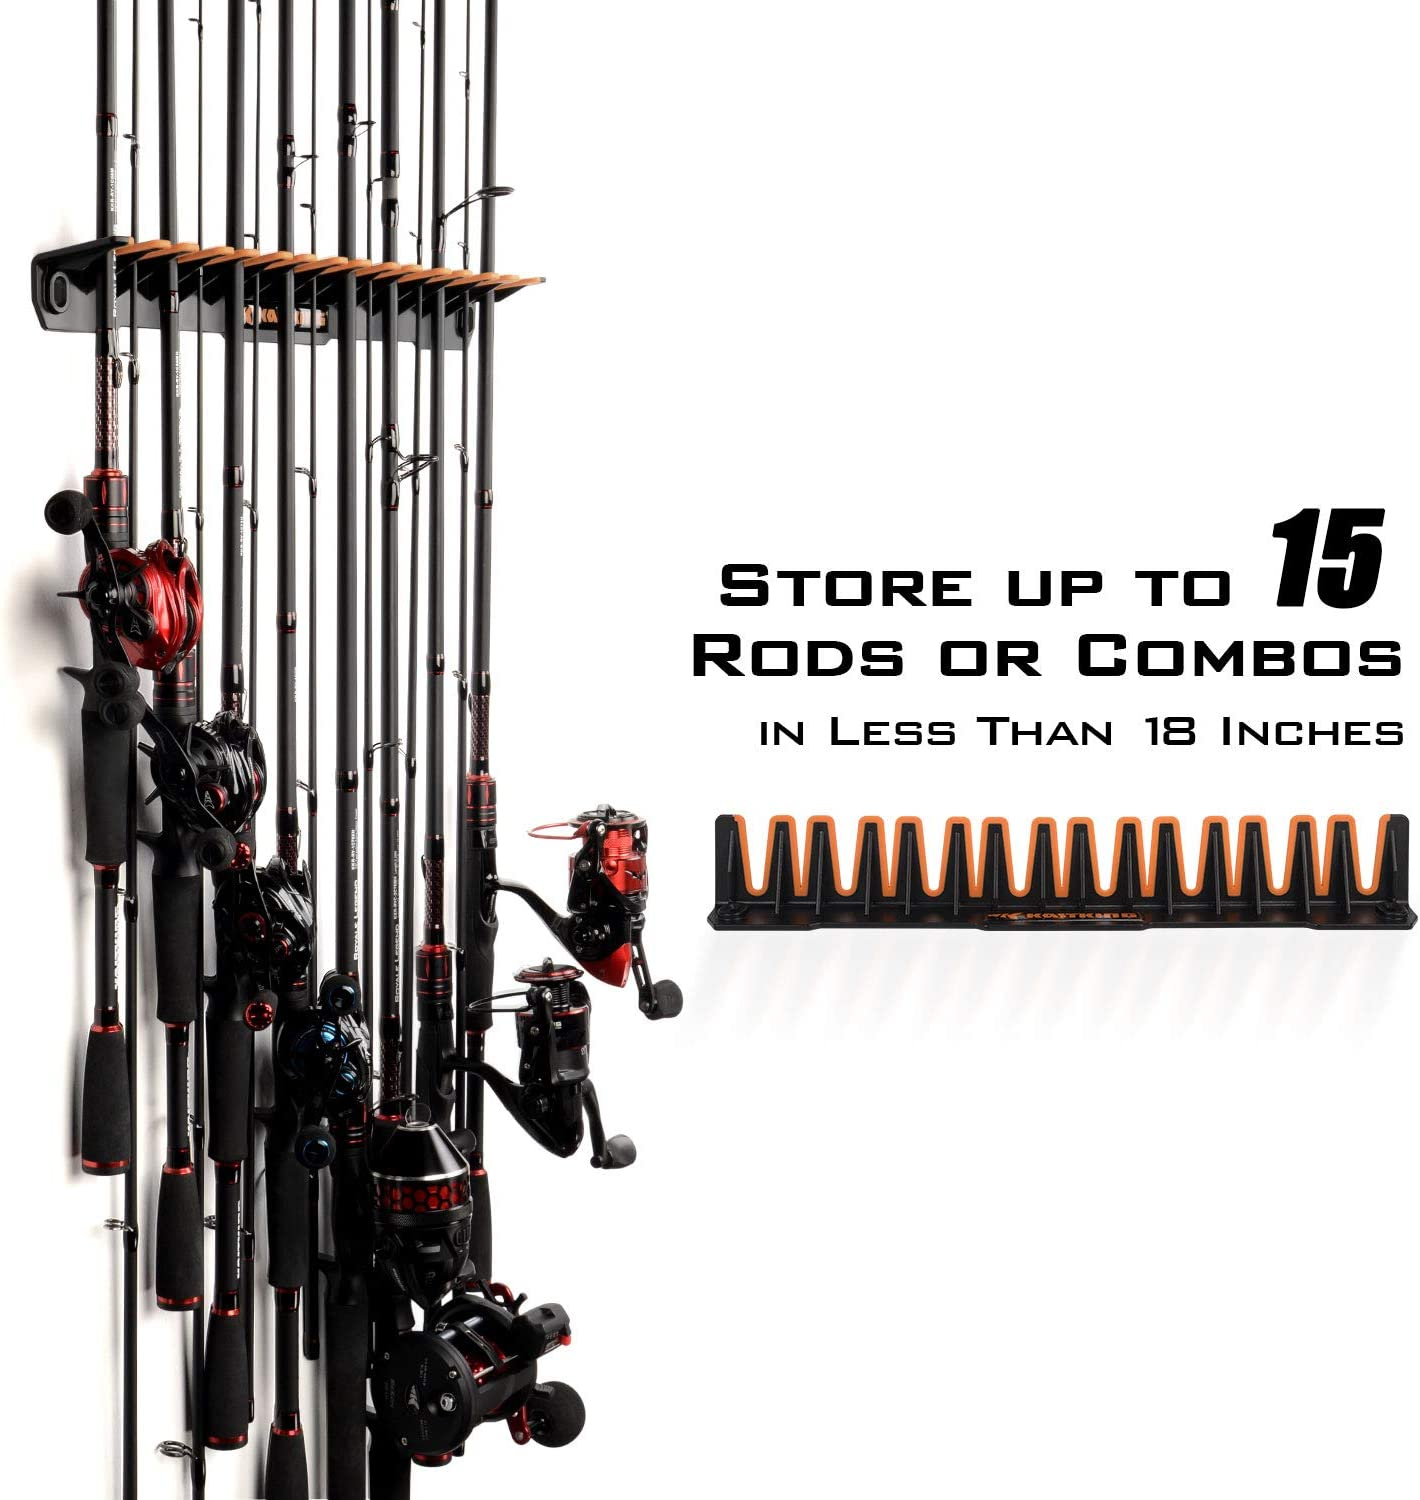 Saltwater Vertical Wall Mounted Fishing Pole Rack up to 15 Rod and Reel Combos